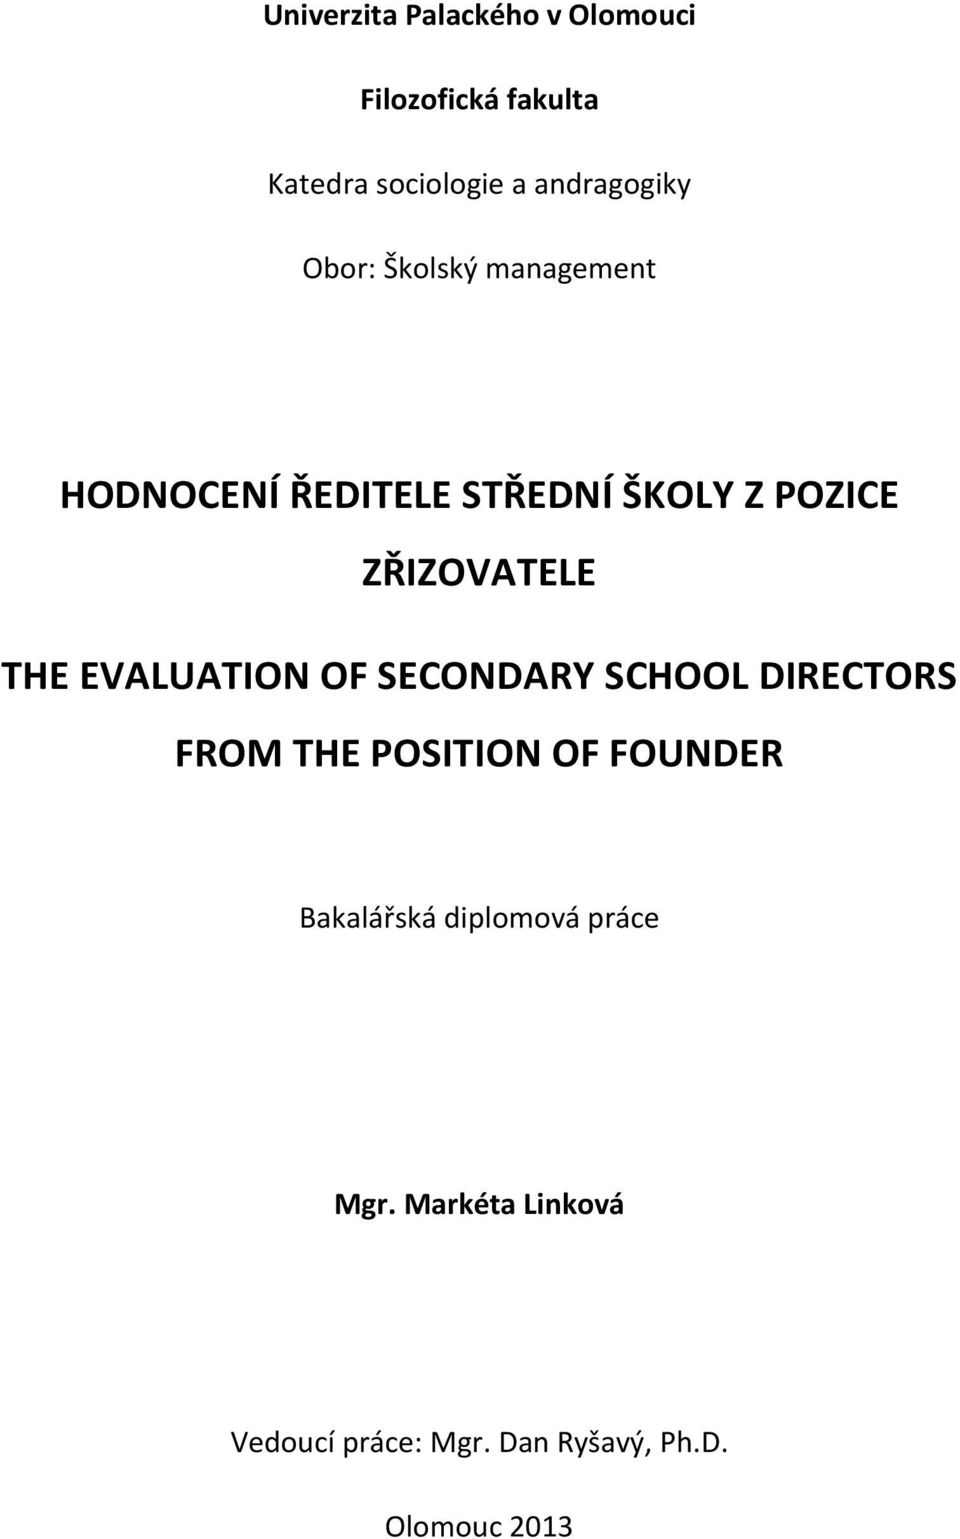 ZŘIZOVATELE THE EVALUATION OF SECONDARY SCHOOL DIRECTORS FROM THE POSITION OF